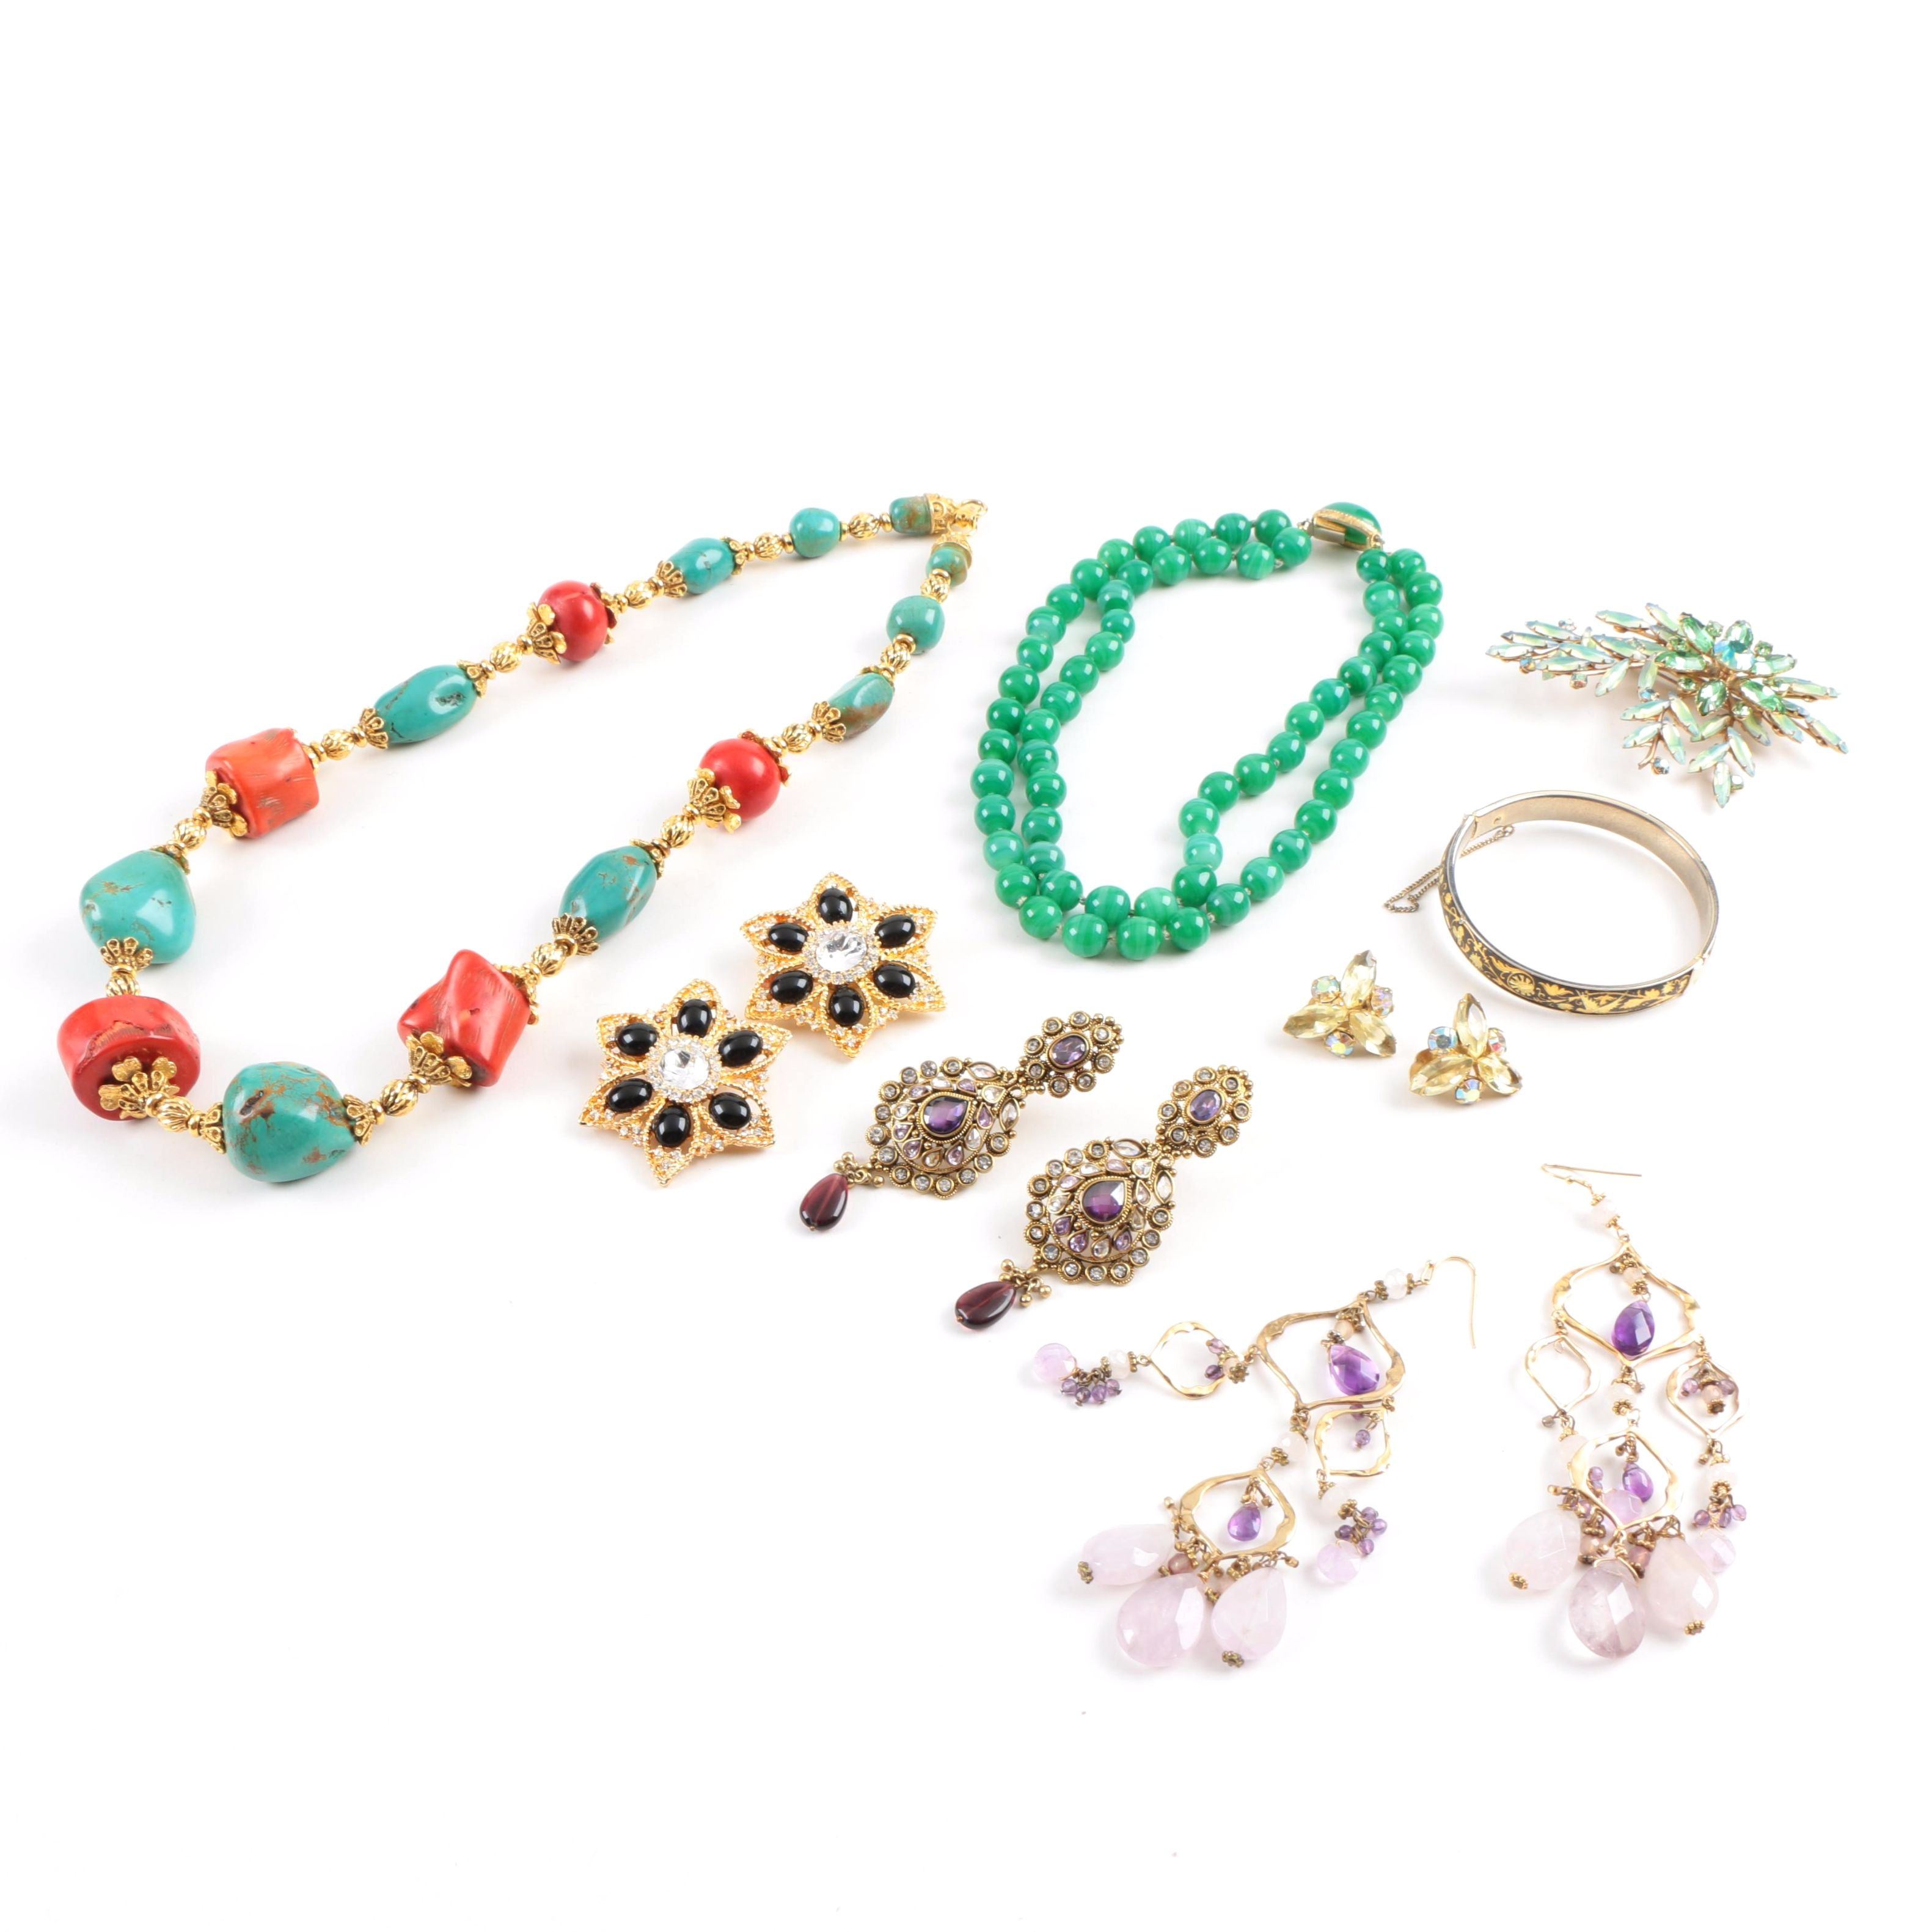 Assorted Costume Jewelry Including a Turquoise and Coral Necklace